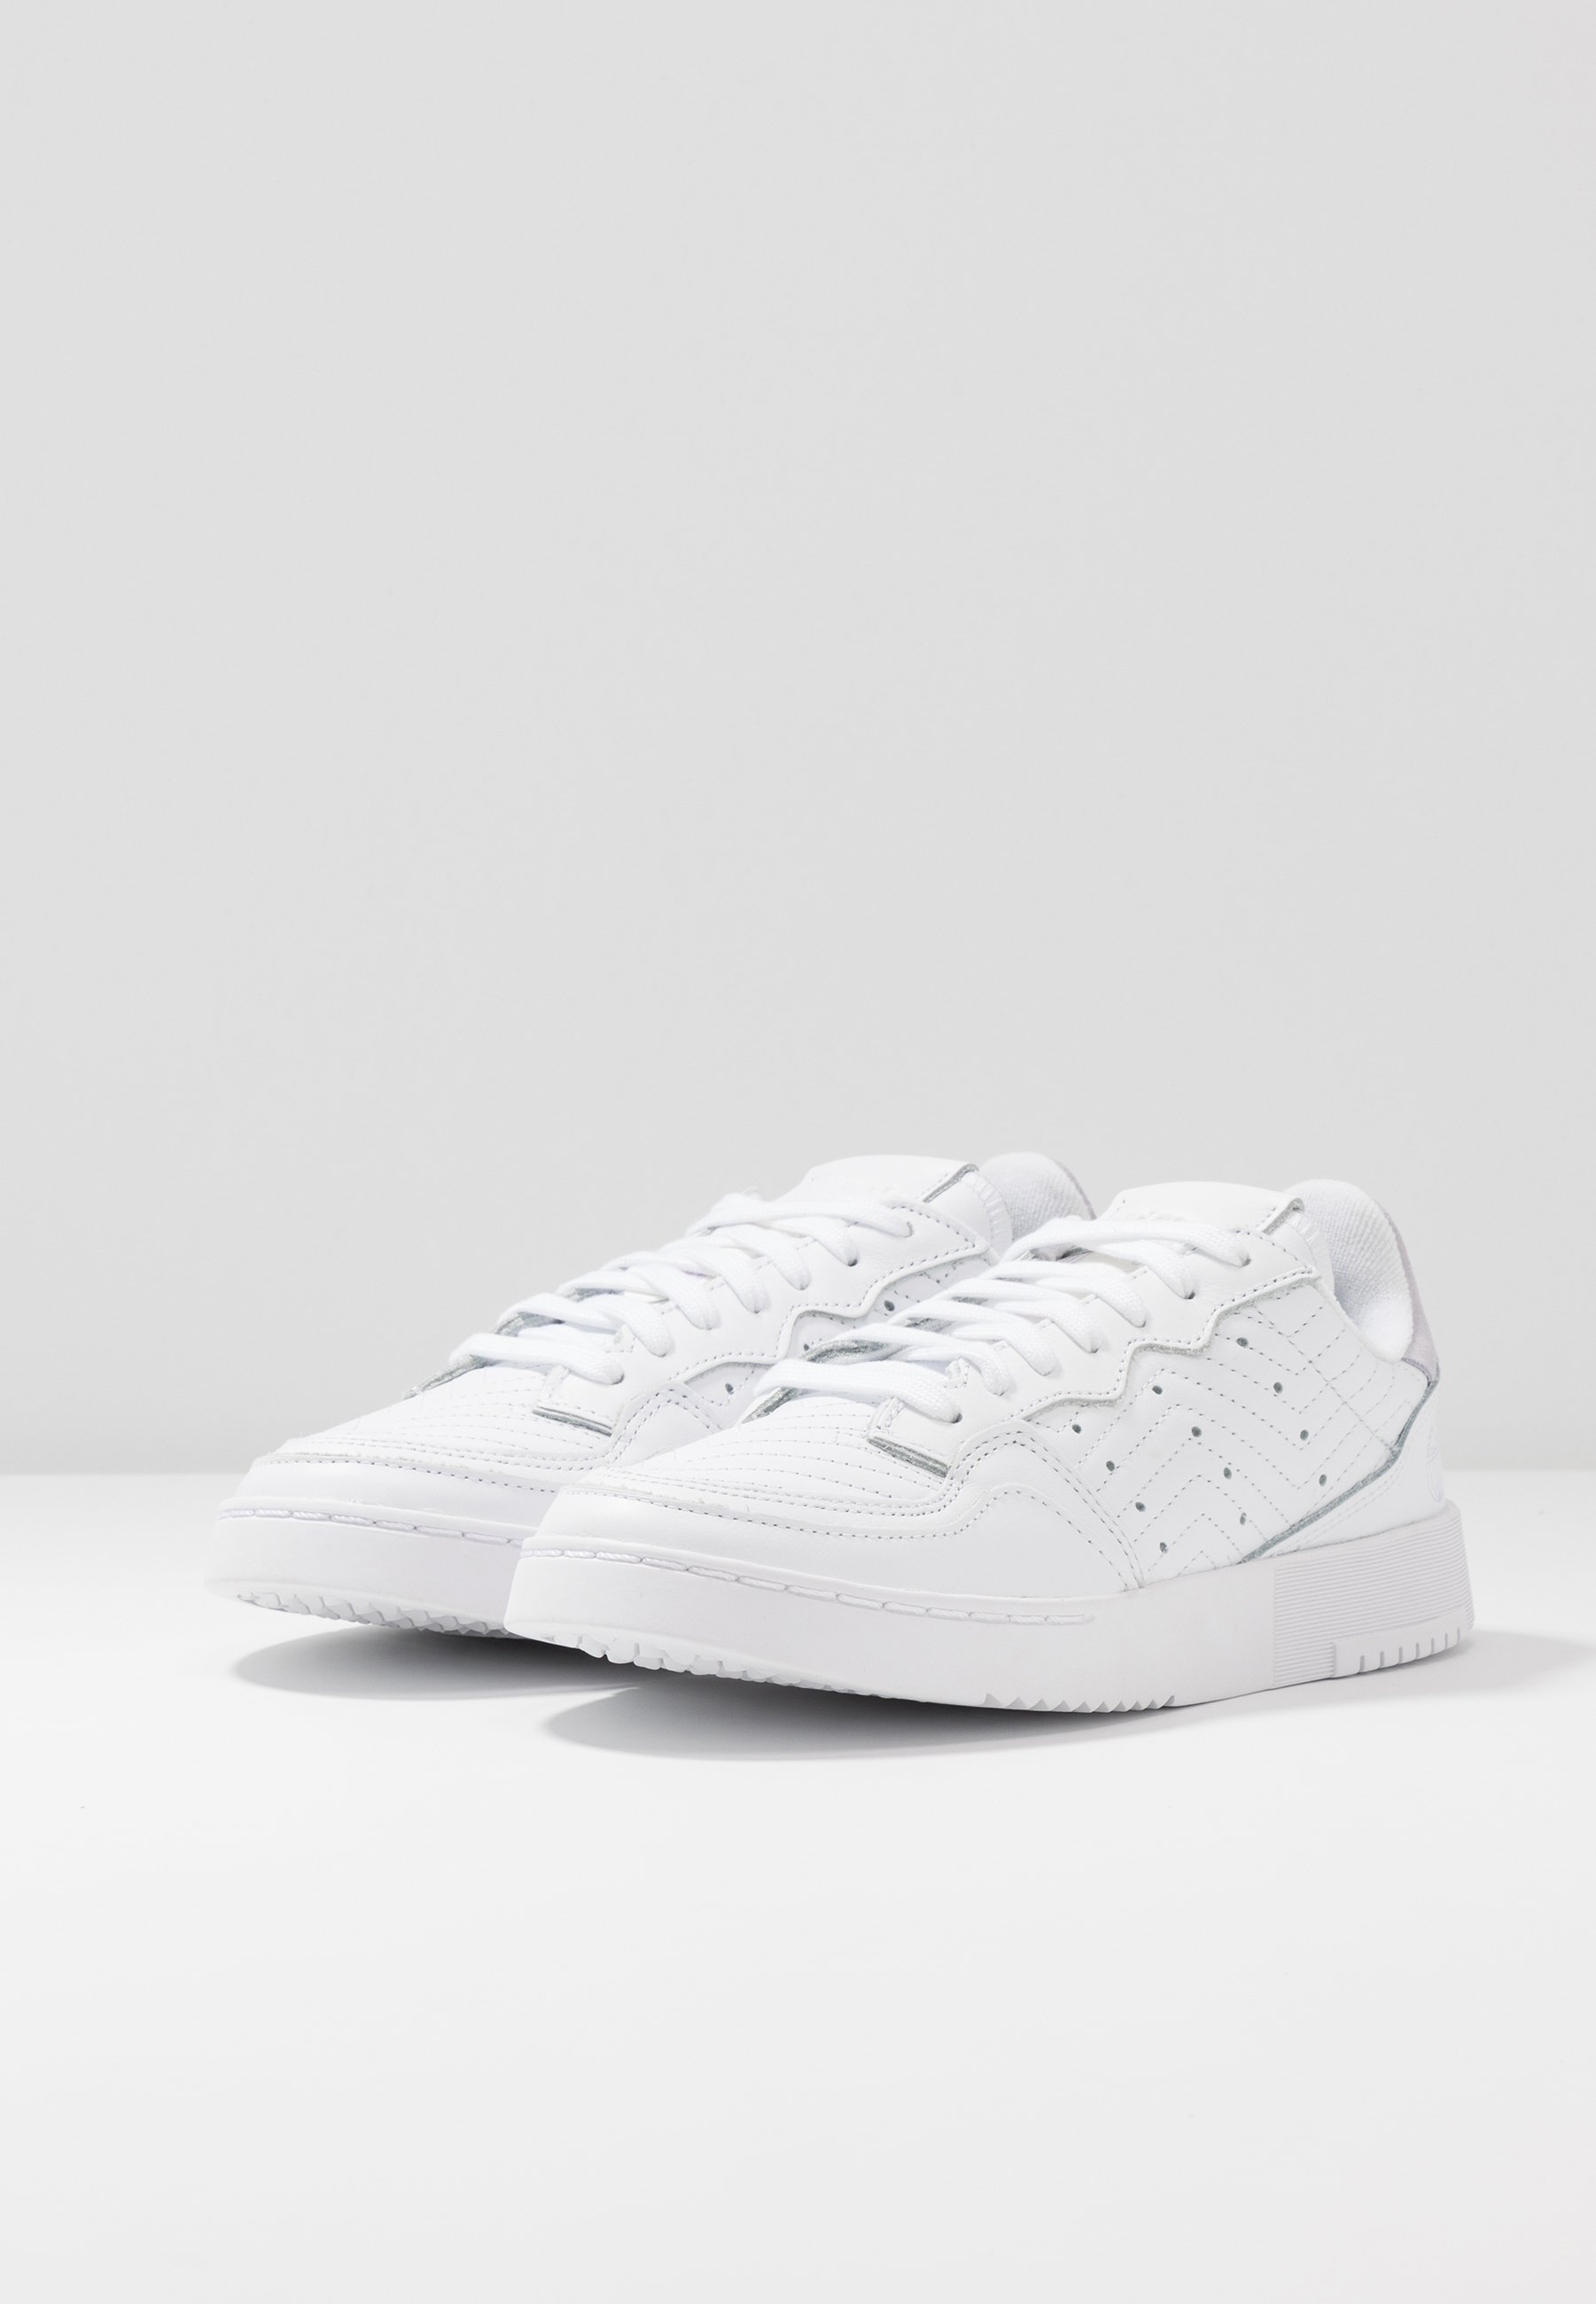 SUPERCOURT Sneaker low footwear whitepurple tint